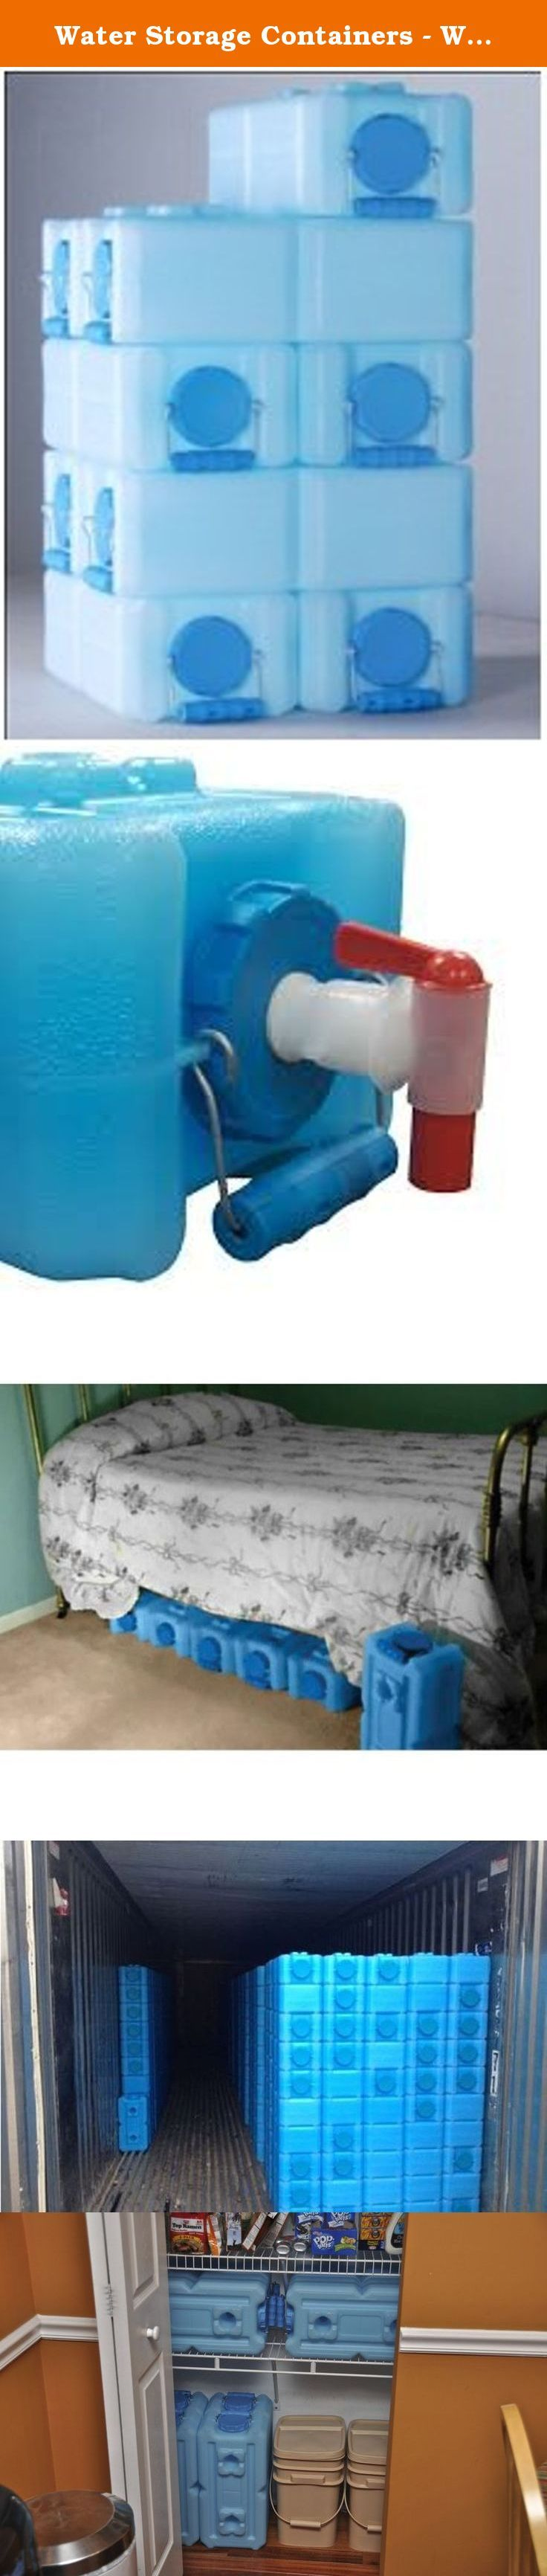 ab4b355241662256e2f05e559d653ce6  water containers food storage containers Top Result 53 Best Of Portable Water Tanks Photos 2018 Kdh6